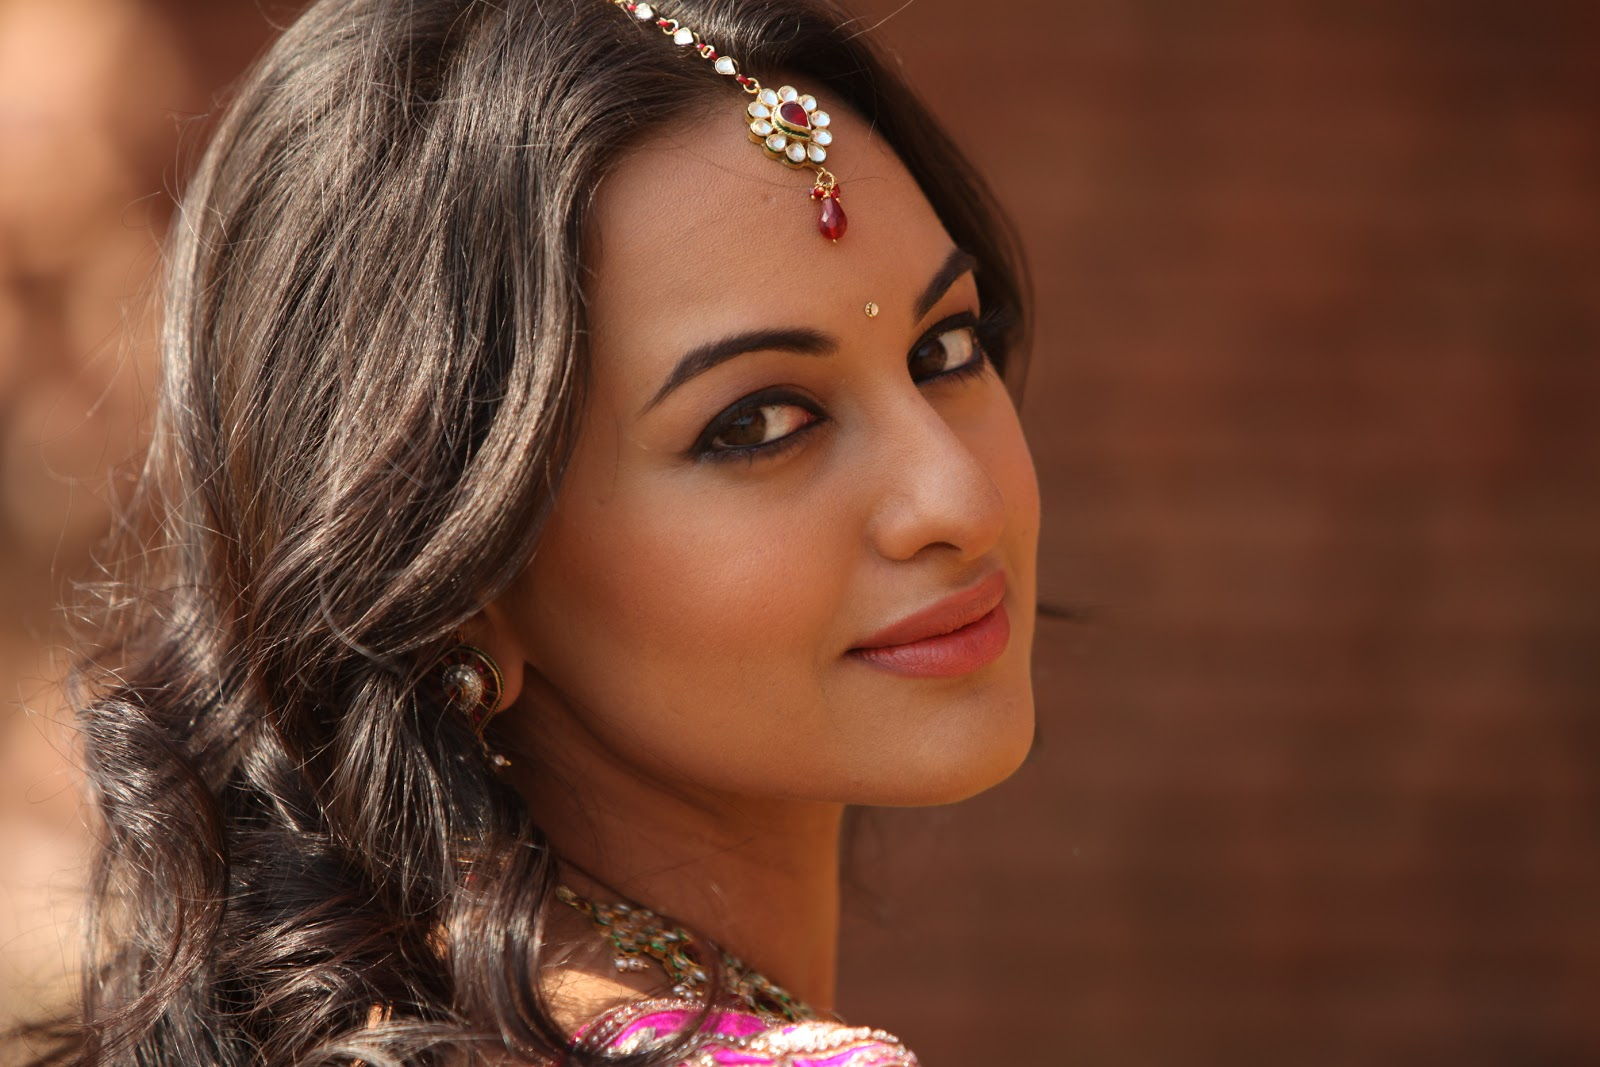 Sonakshi sinha latest hot hd wallpapers 2013 world for The latest wallpaper